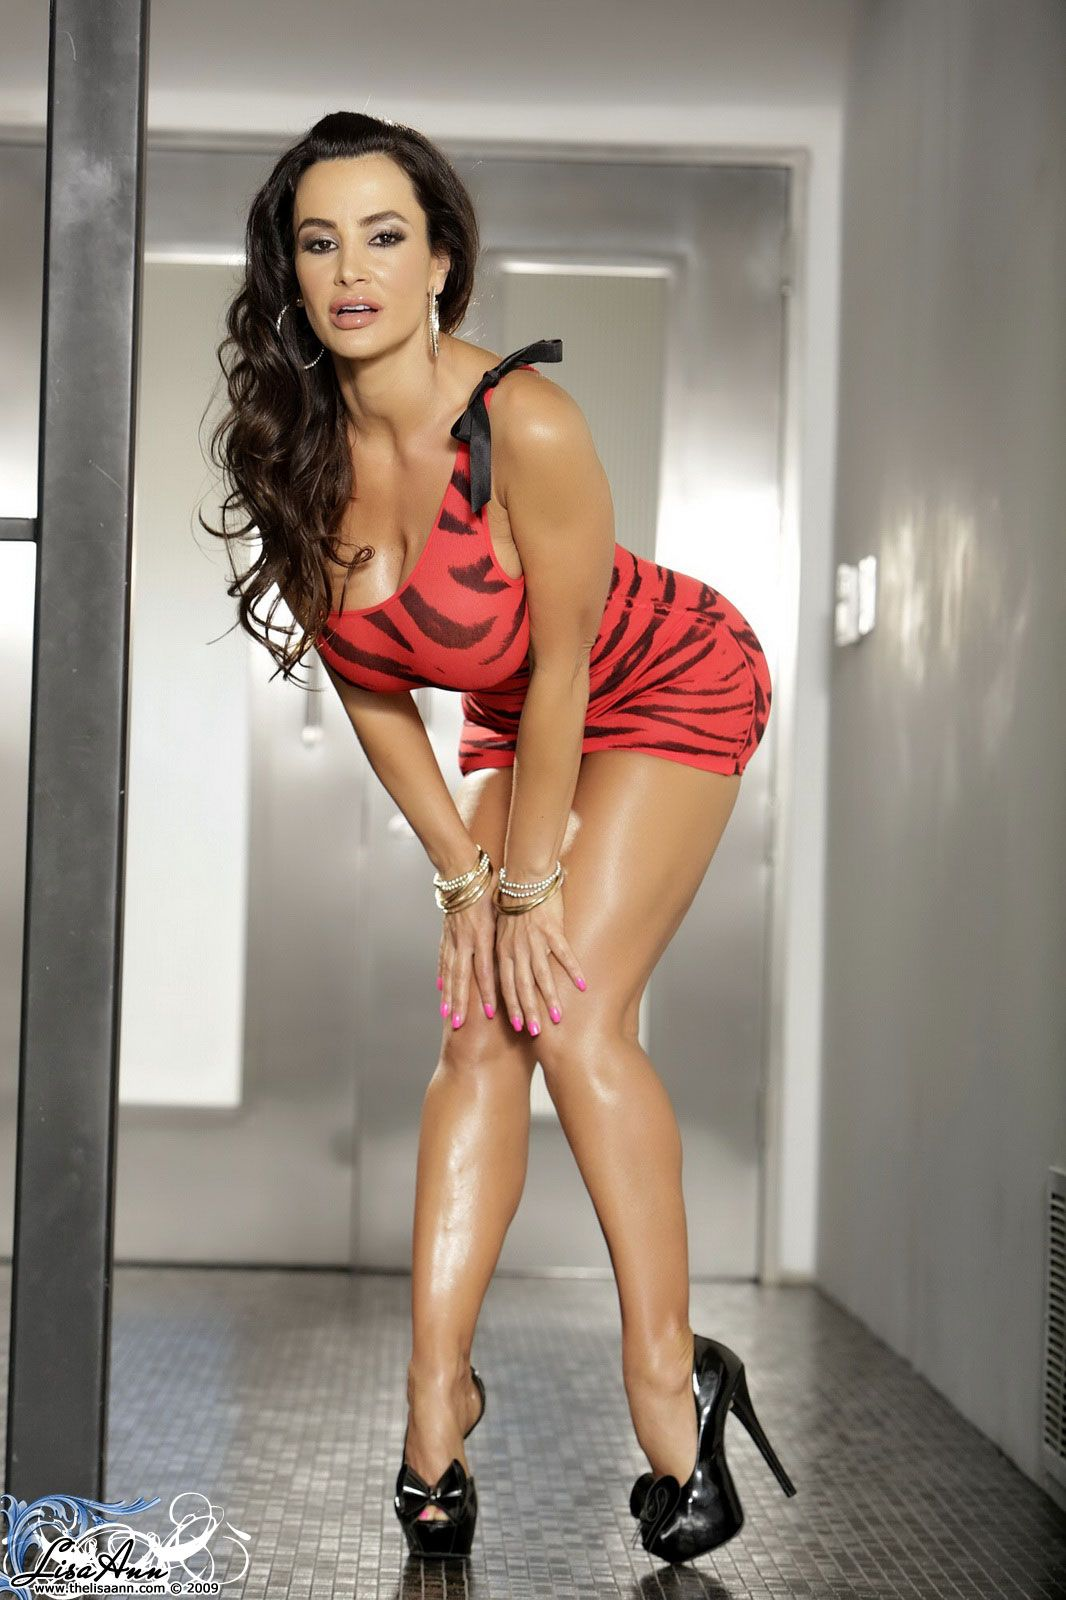 Agree, the Lisa ann sexy tight dress